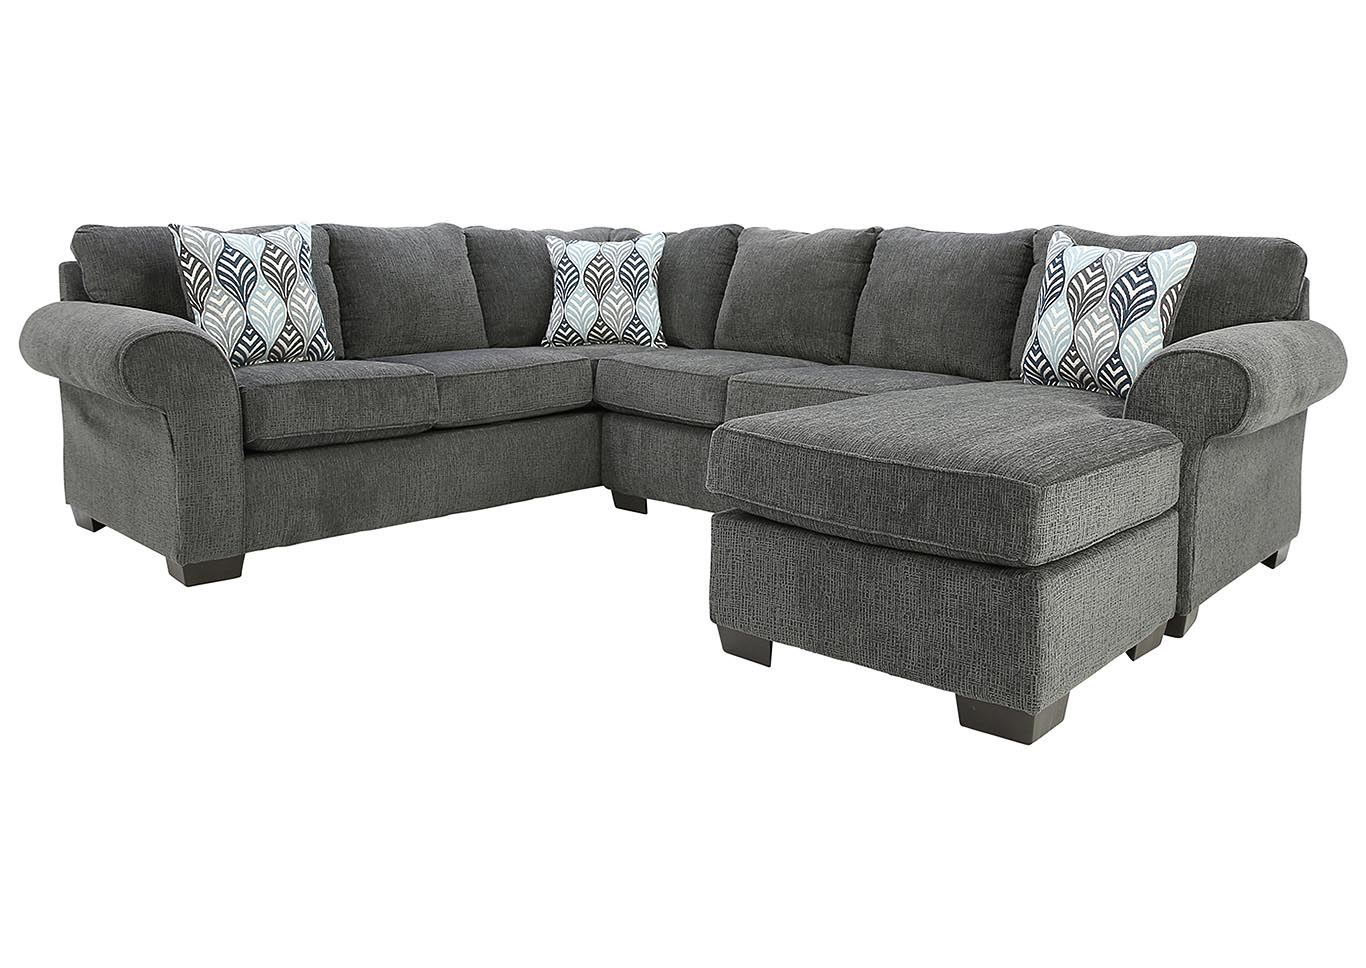 CHARISMA SMOKE 3 PIECE SECTIONAL,AFFORDABLE FURNITURE